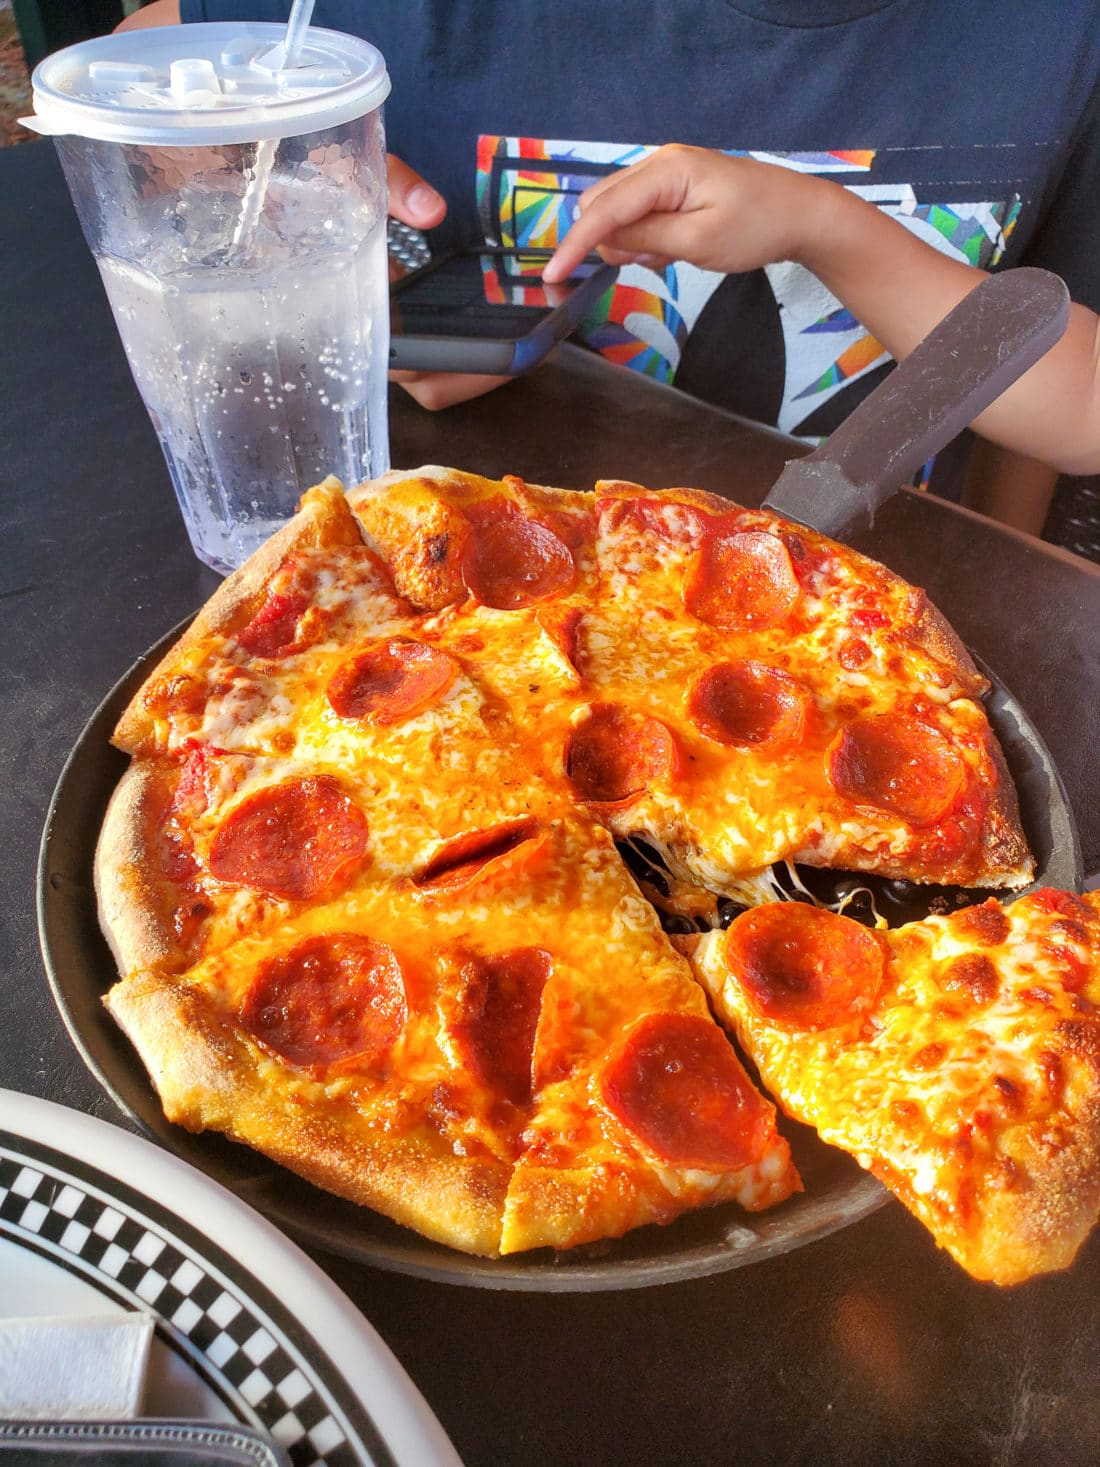 Big Daddy's Pizzeria Pepperoni Pizza. This is not your average pizza pie! At the heart of Big Daddy's is a 550 degree, wood-fired flame inside of a one-of-a-kind brick oven. Read all about why this freshly made pizza is my families go to pizza joint in Pigeon Forge, TN.